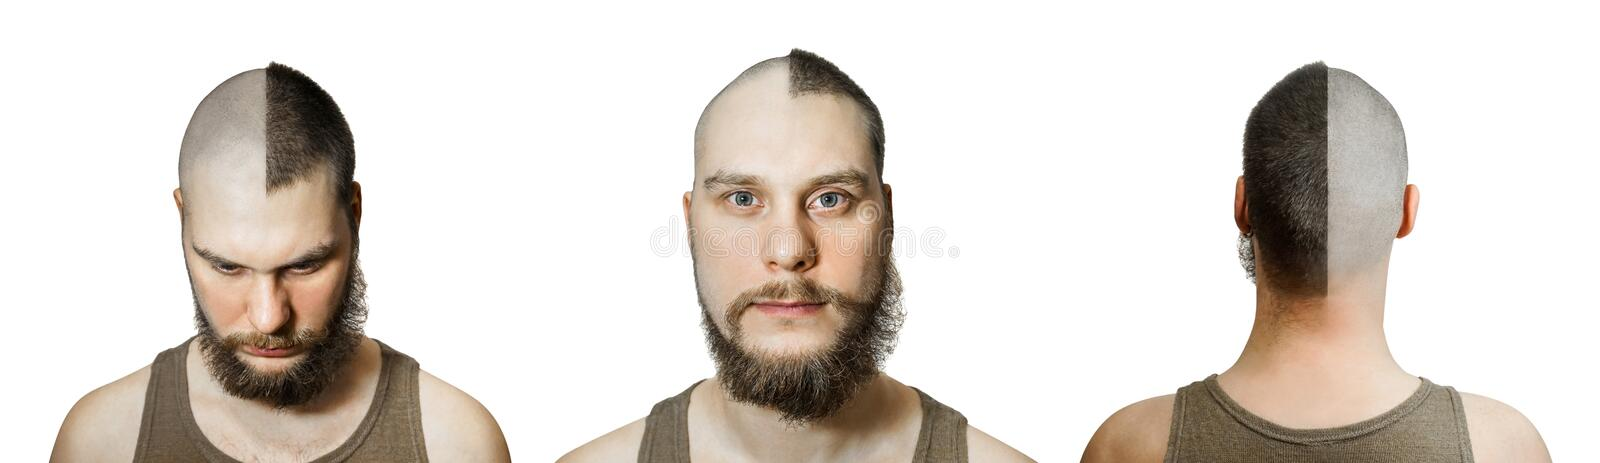 Half trimmed bald guy on isolated background. man hold comb and clipper. Concept of hair loss, alopecia, transplantation. Half trimmed bald guy on isolated stock images